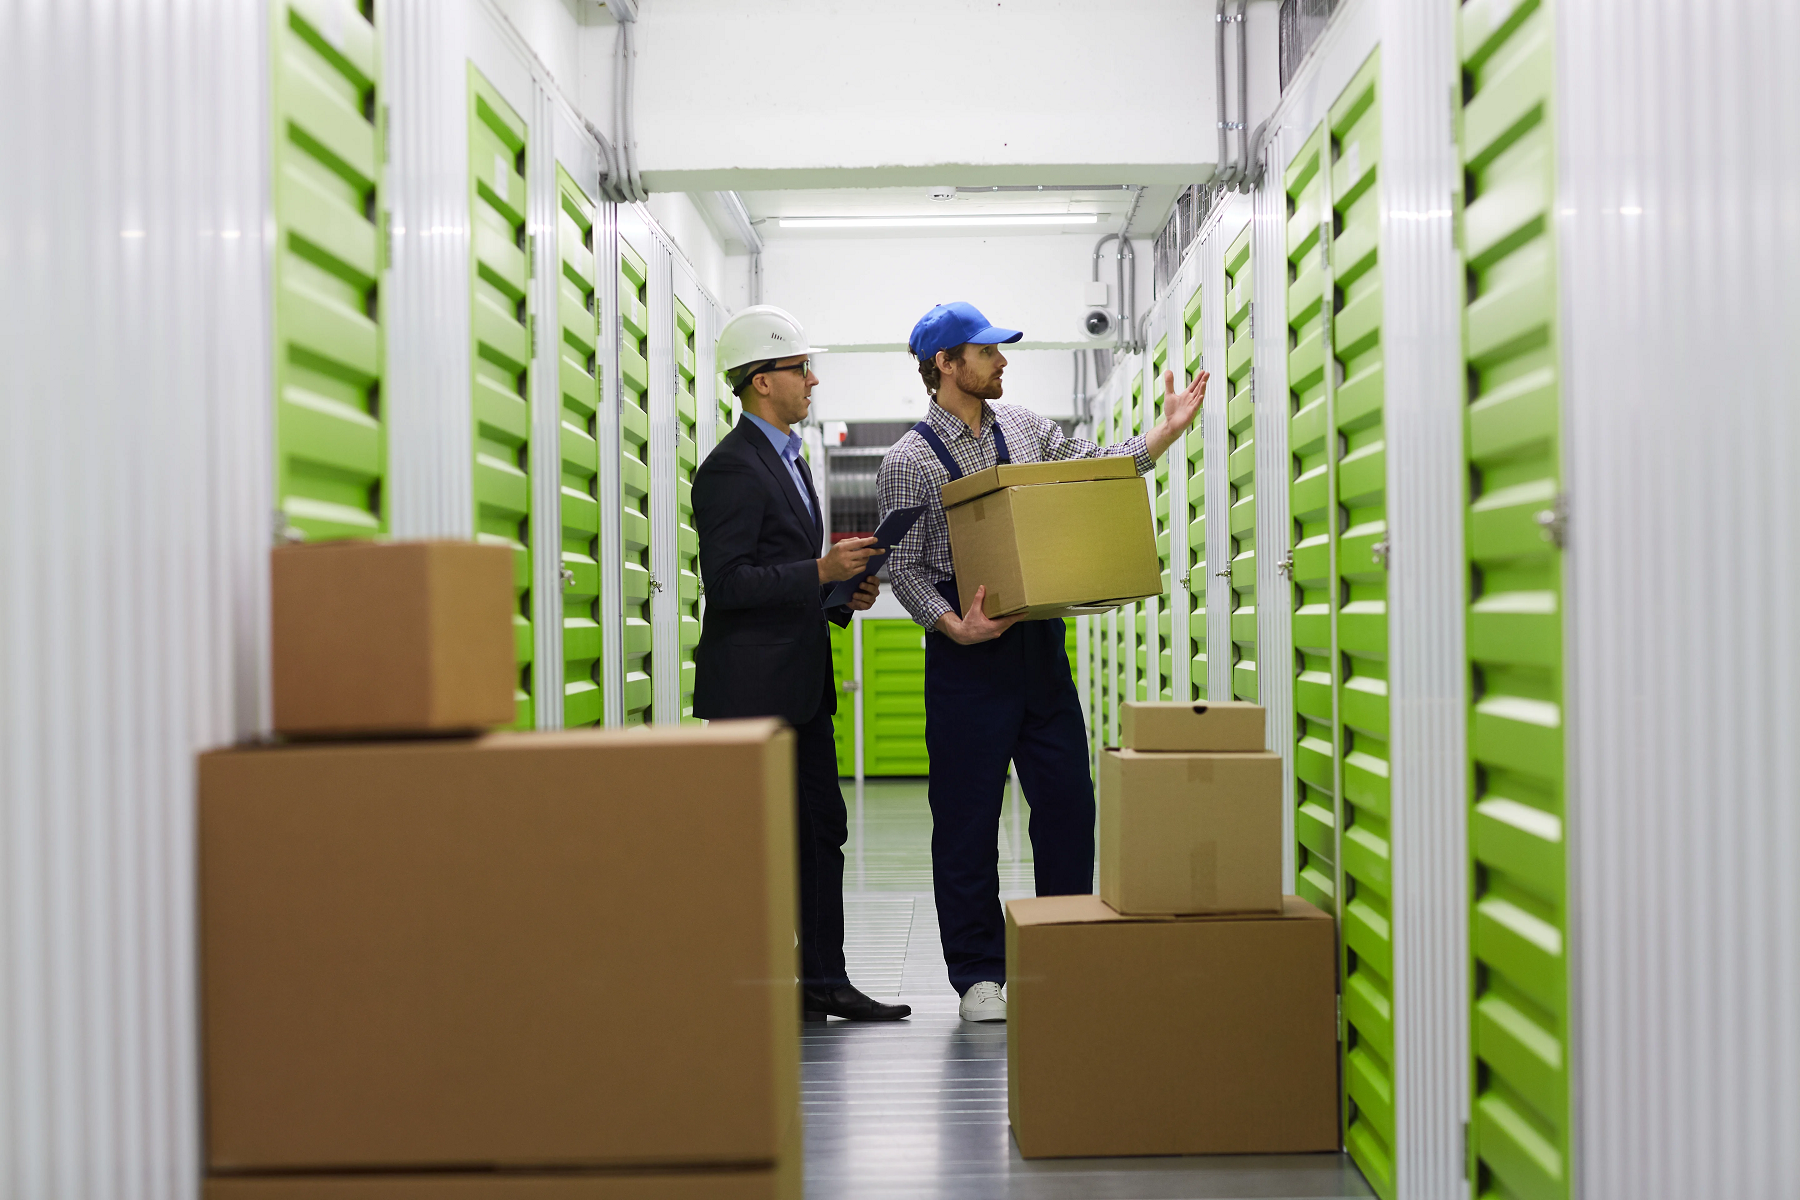 people-loading-boxes-in-stockroom